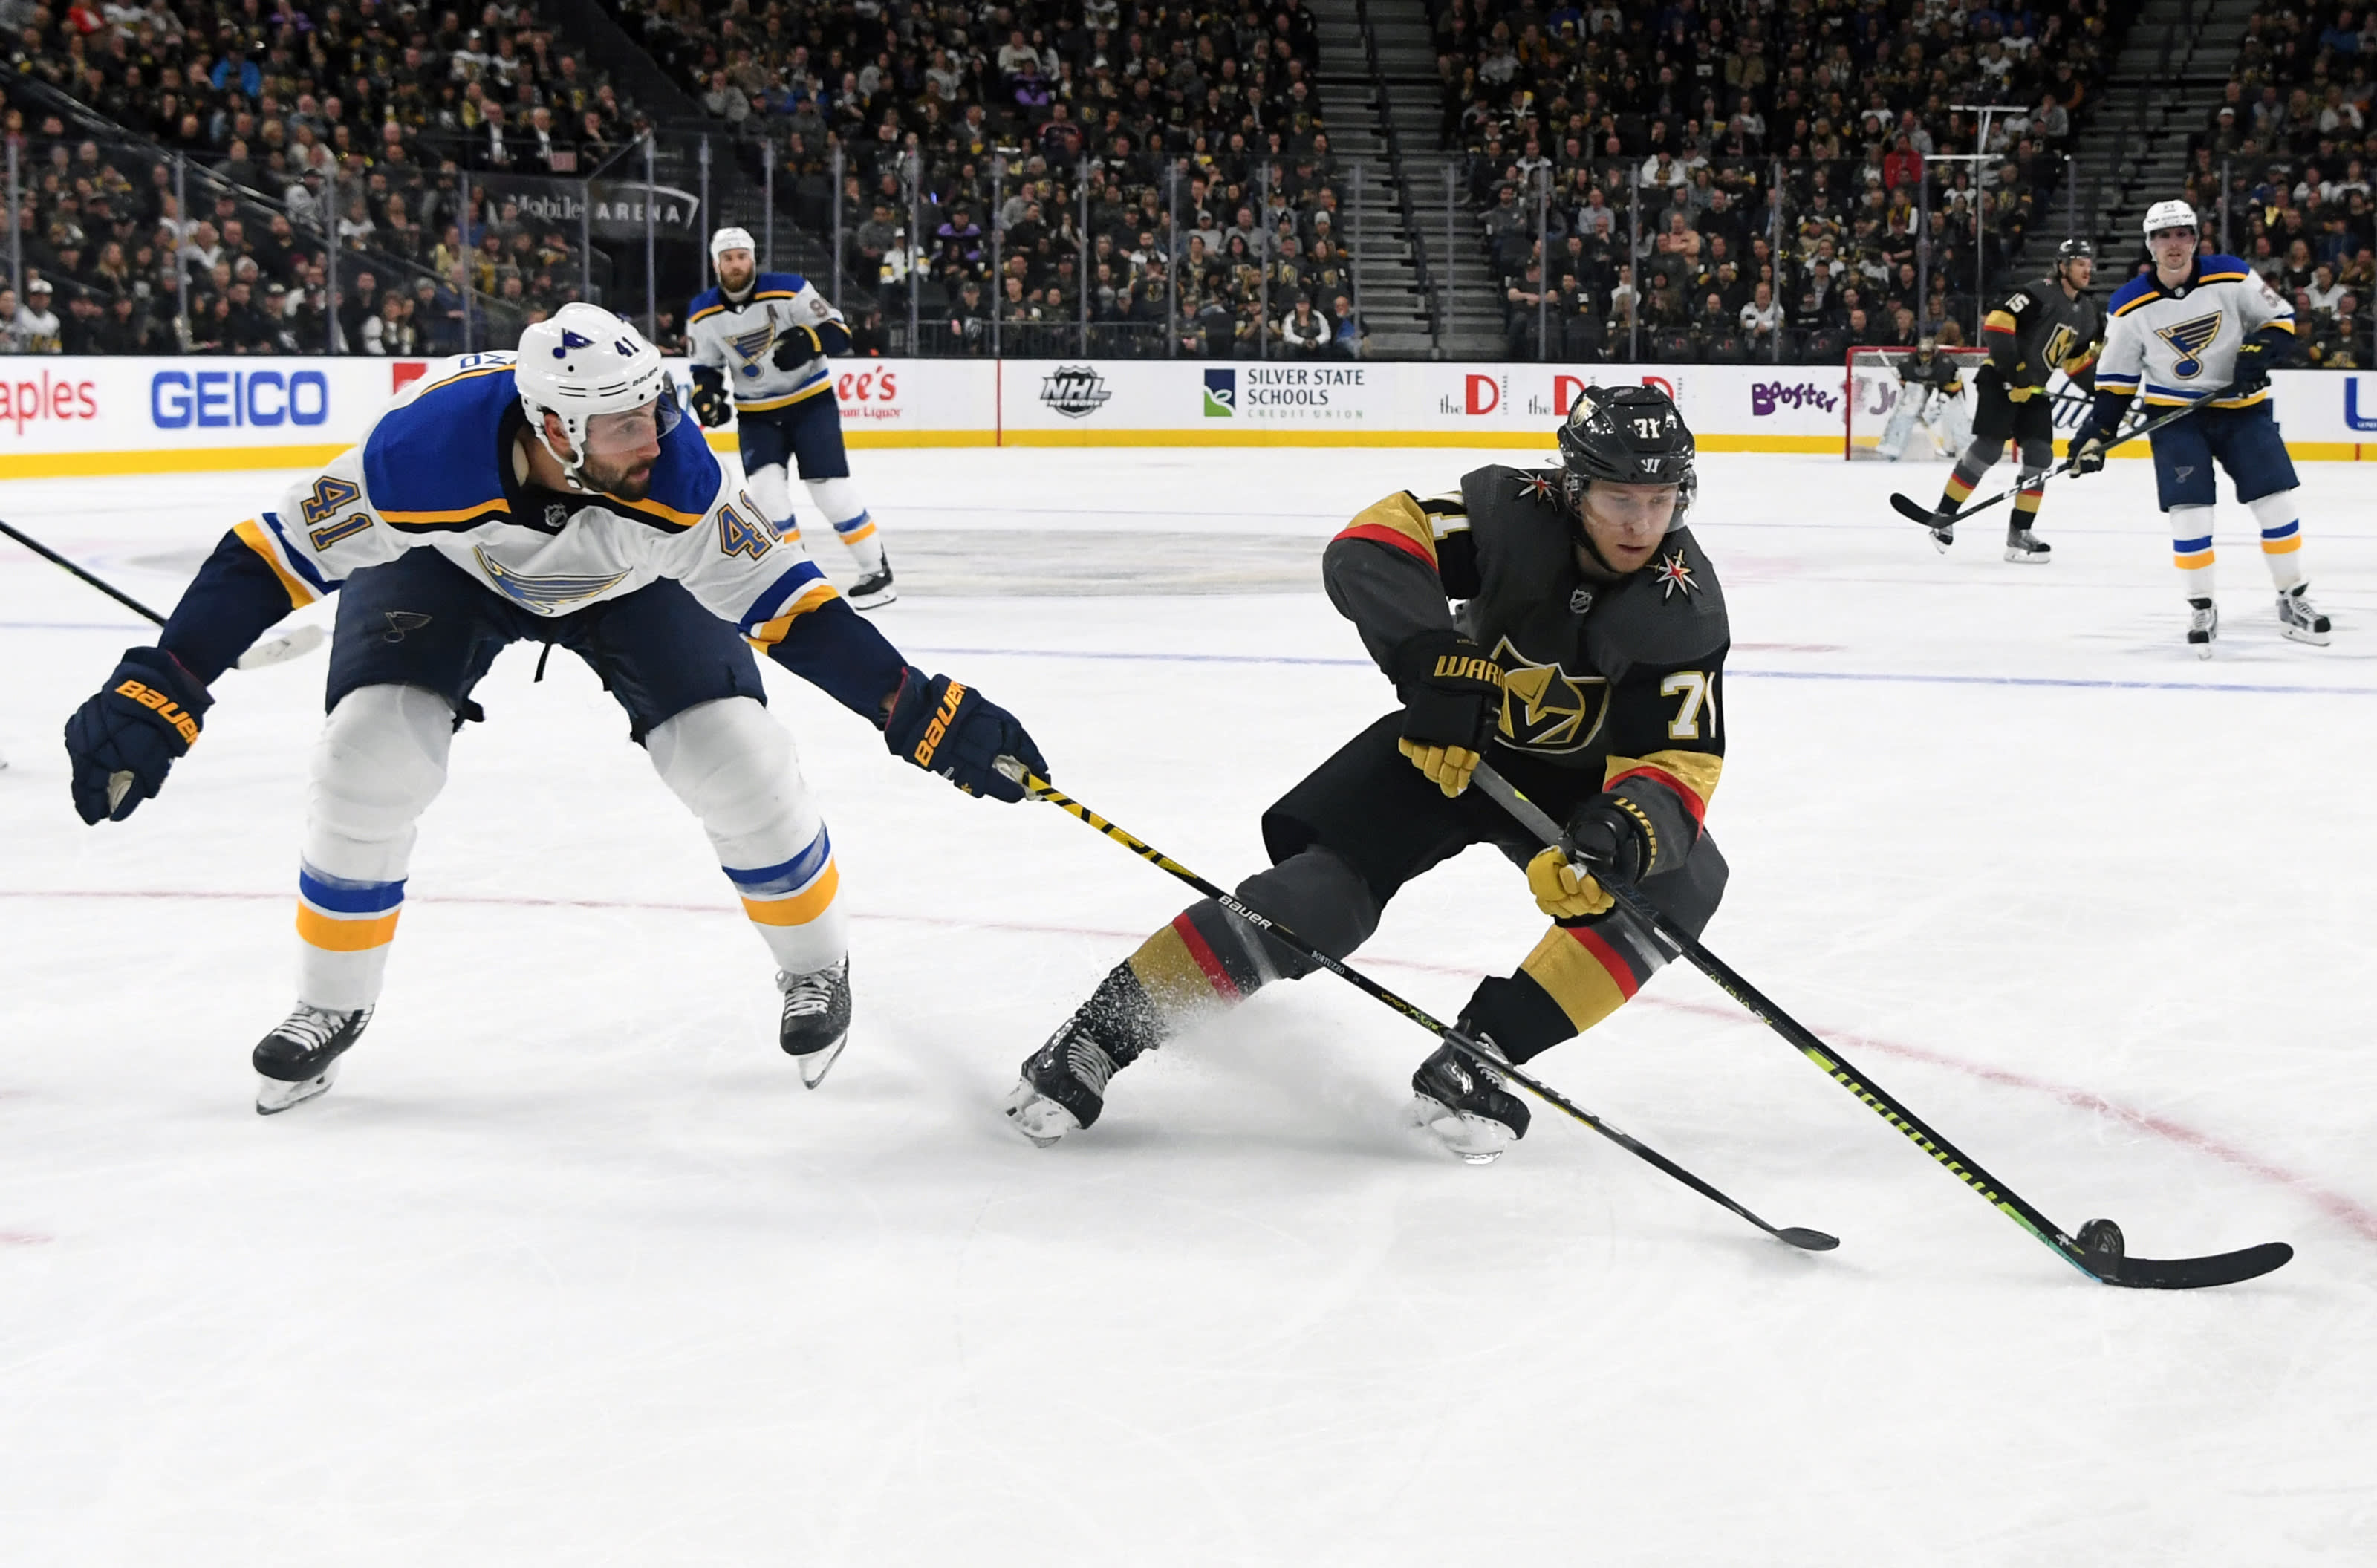 William Karlsson #71 of the Vegas Golden Knights skates with the puck against Robert Bortuzzo #41 of the St. Louis Blues.